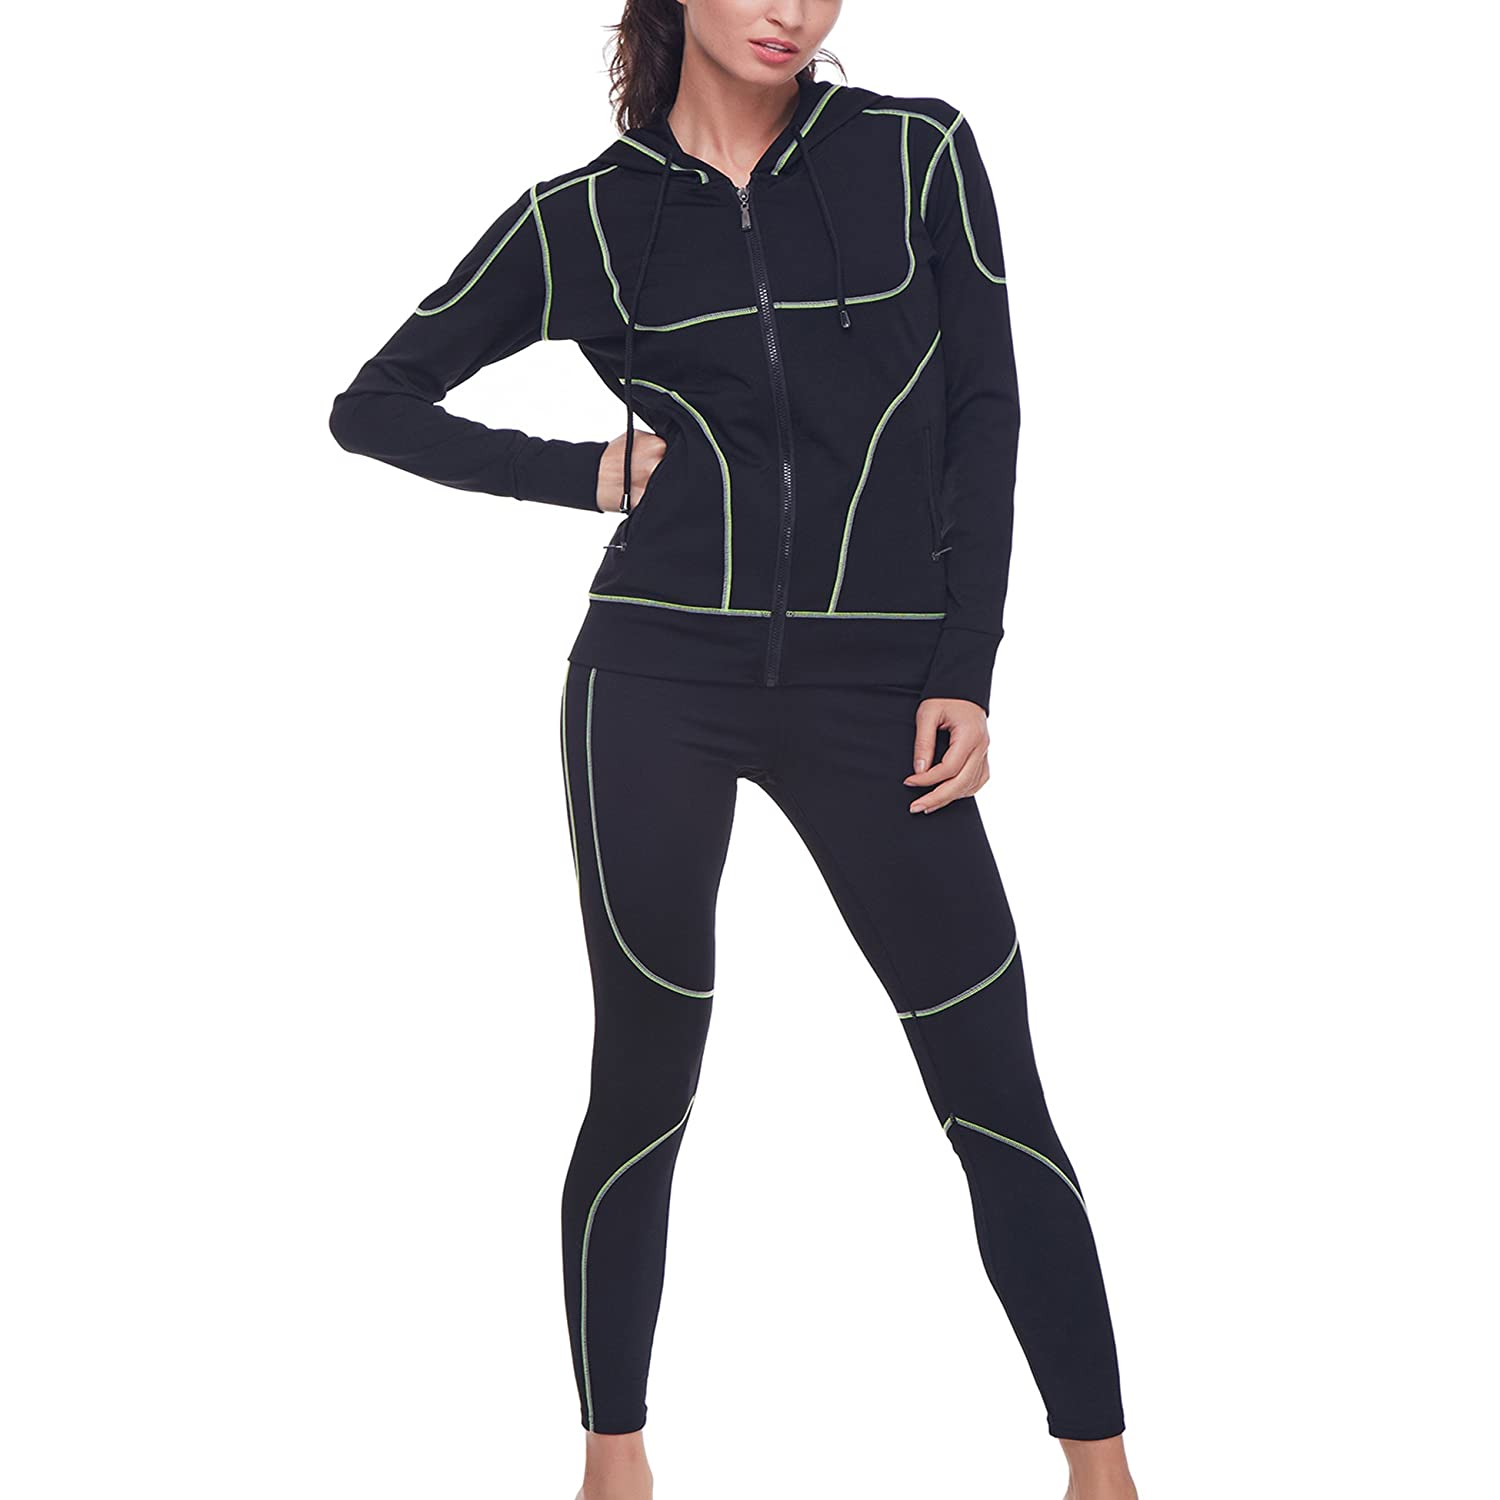 Fitness & Body Building Belleziva Women Yoga Set Fitness Clothes Crop Top Pants Running Tights Jogging Gym Sport Wear Elastic Workout 2pcs Tracksuit